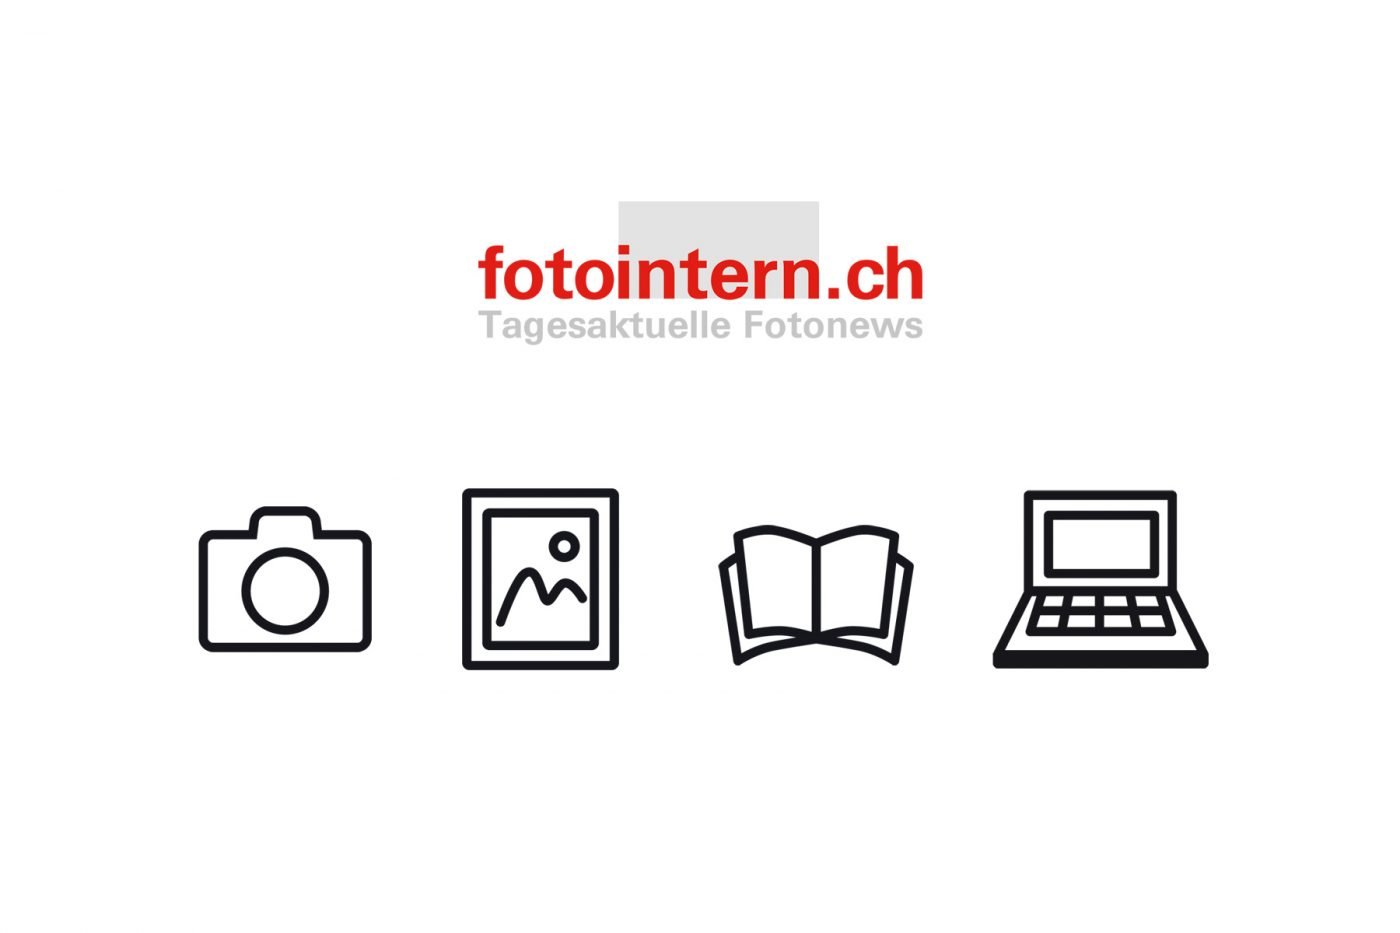 Screenshot for: fotointern